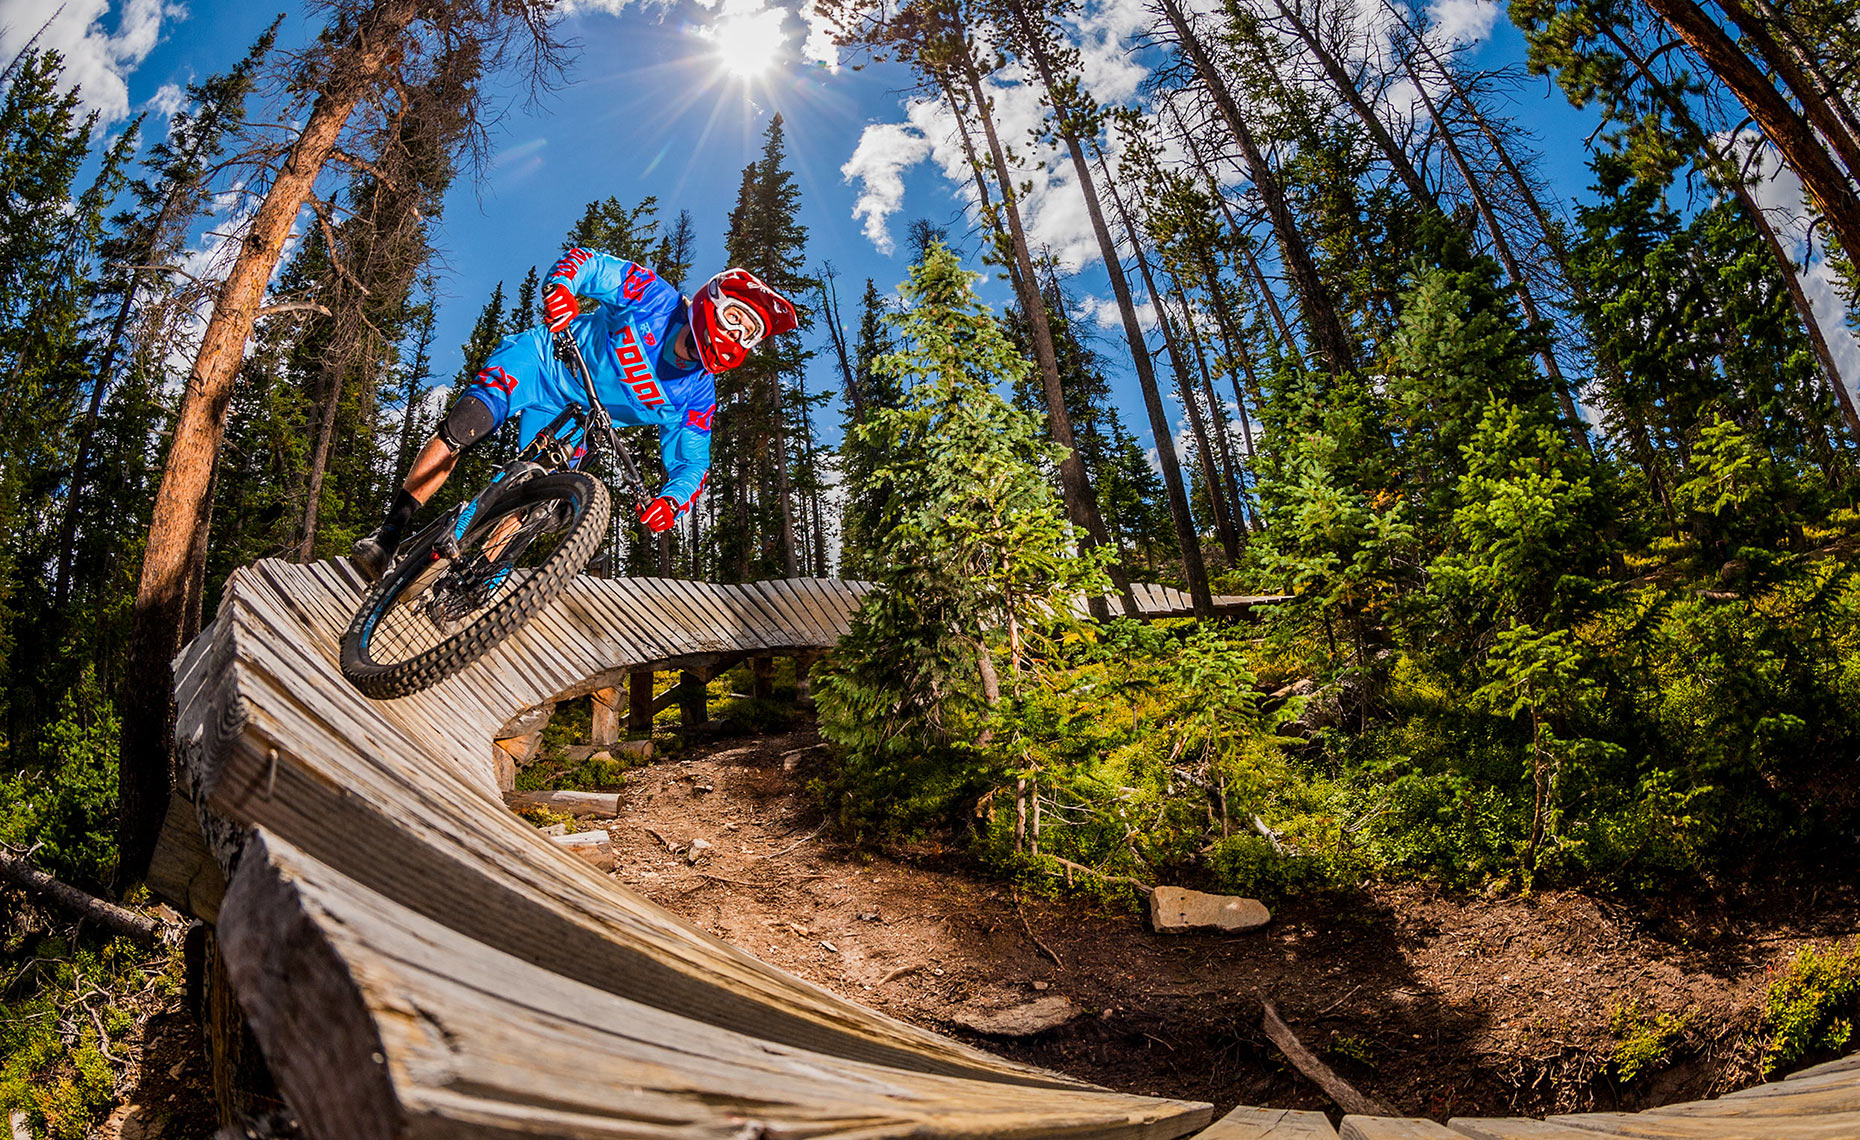 Trevor-Humphres-Trestle-Bike-Park-Chris-Wellhausen-03